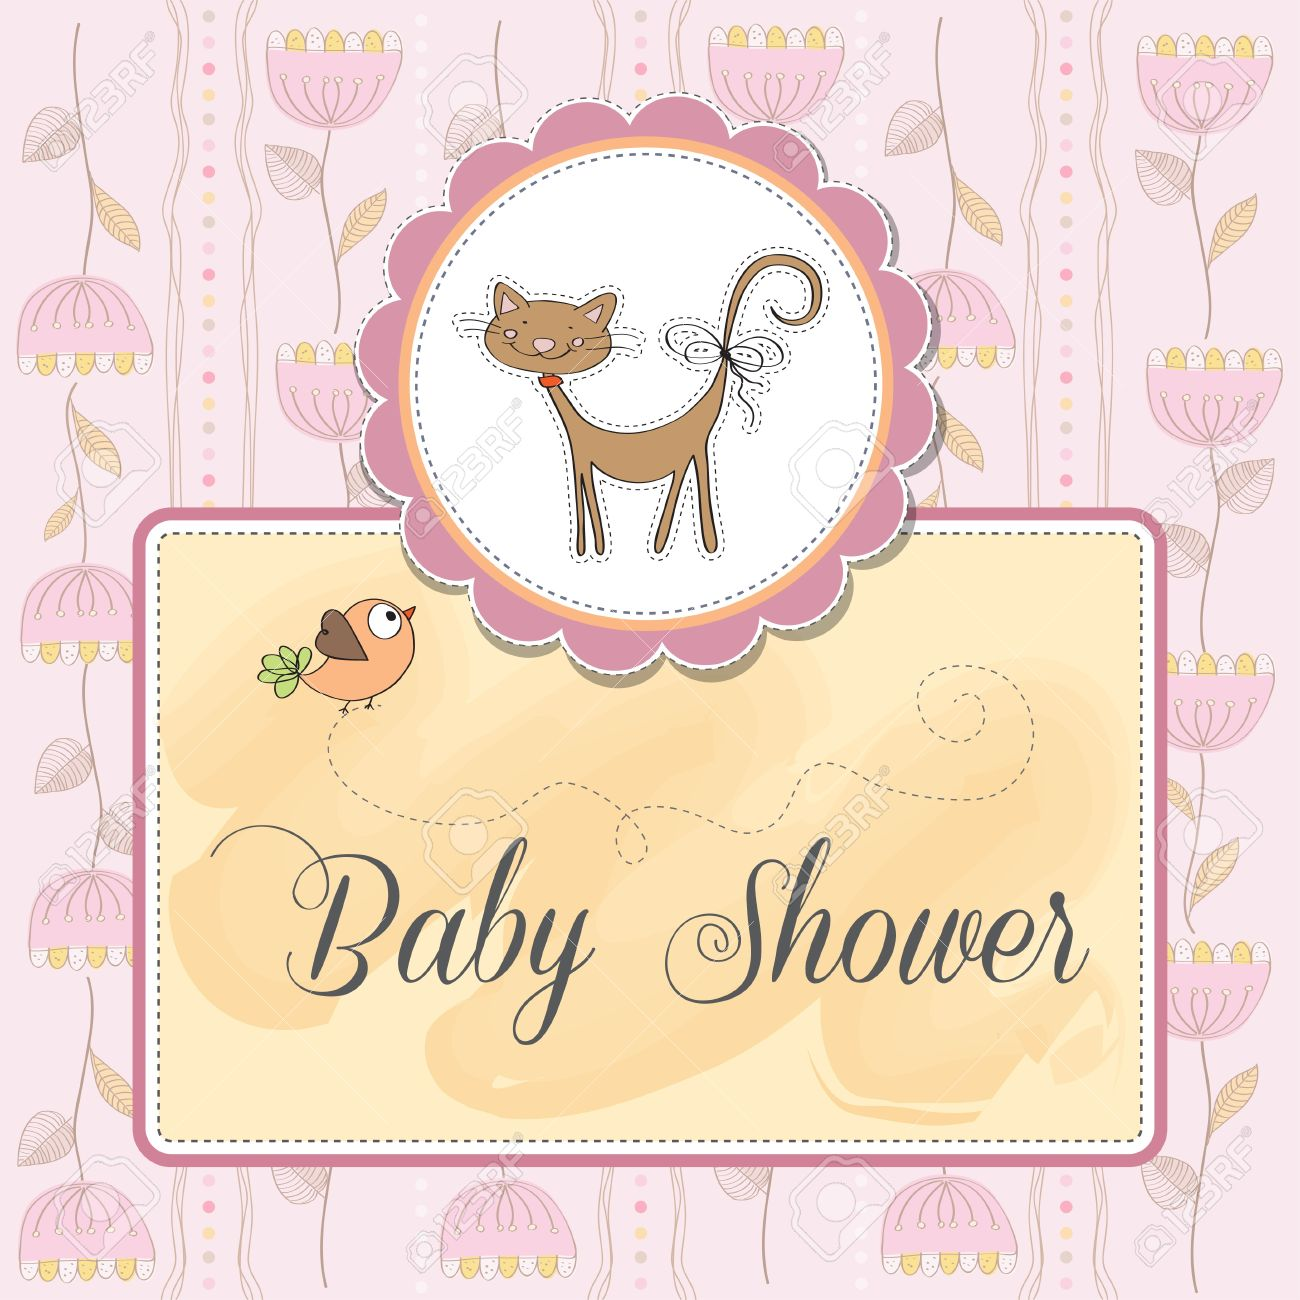 new baby shower card with cat Stock Vector - 14334053